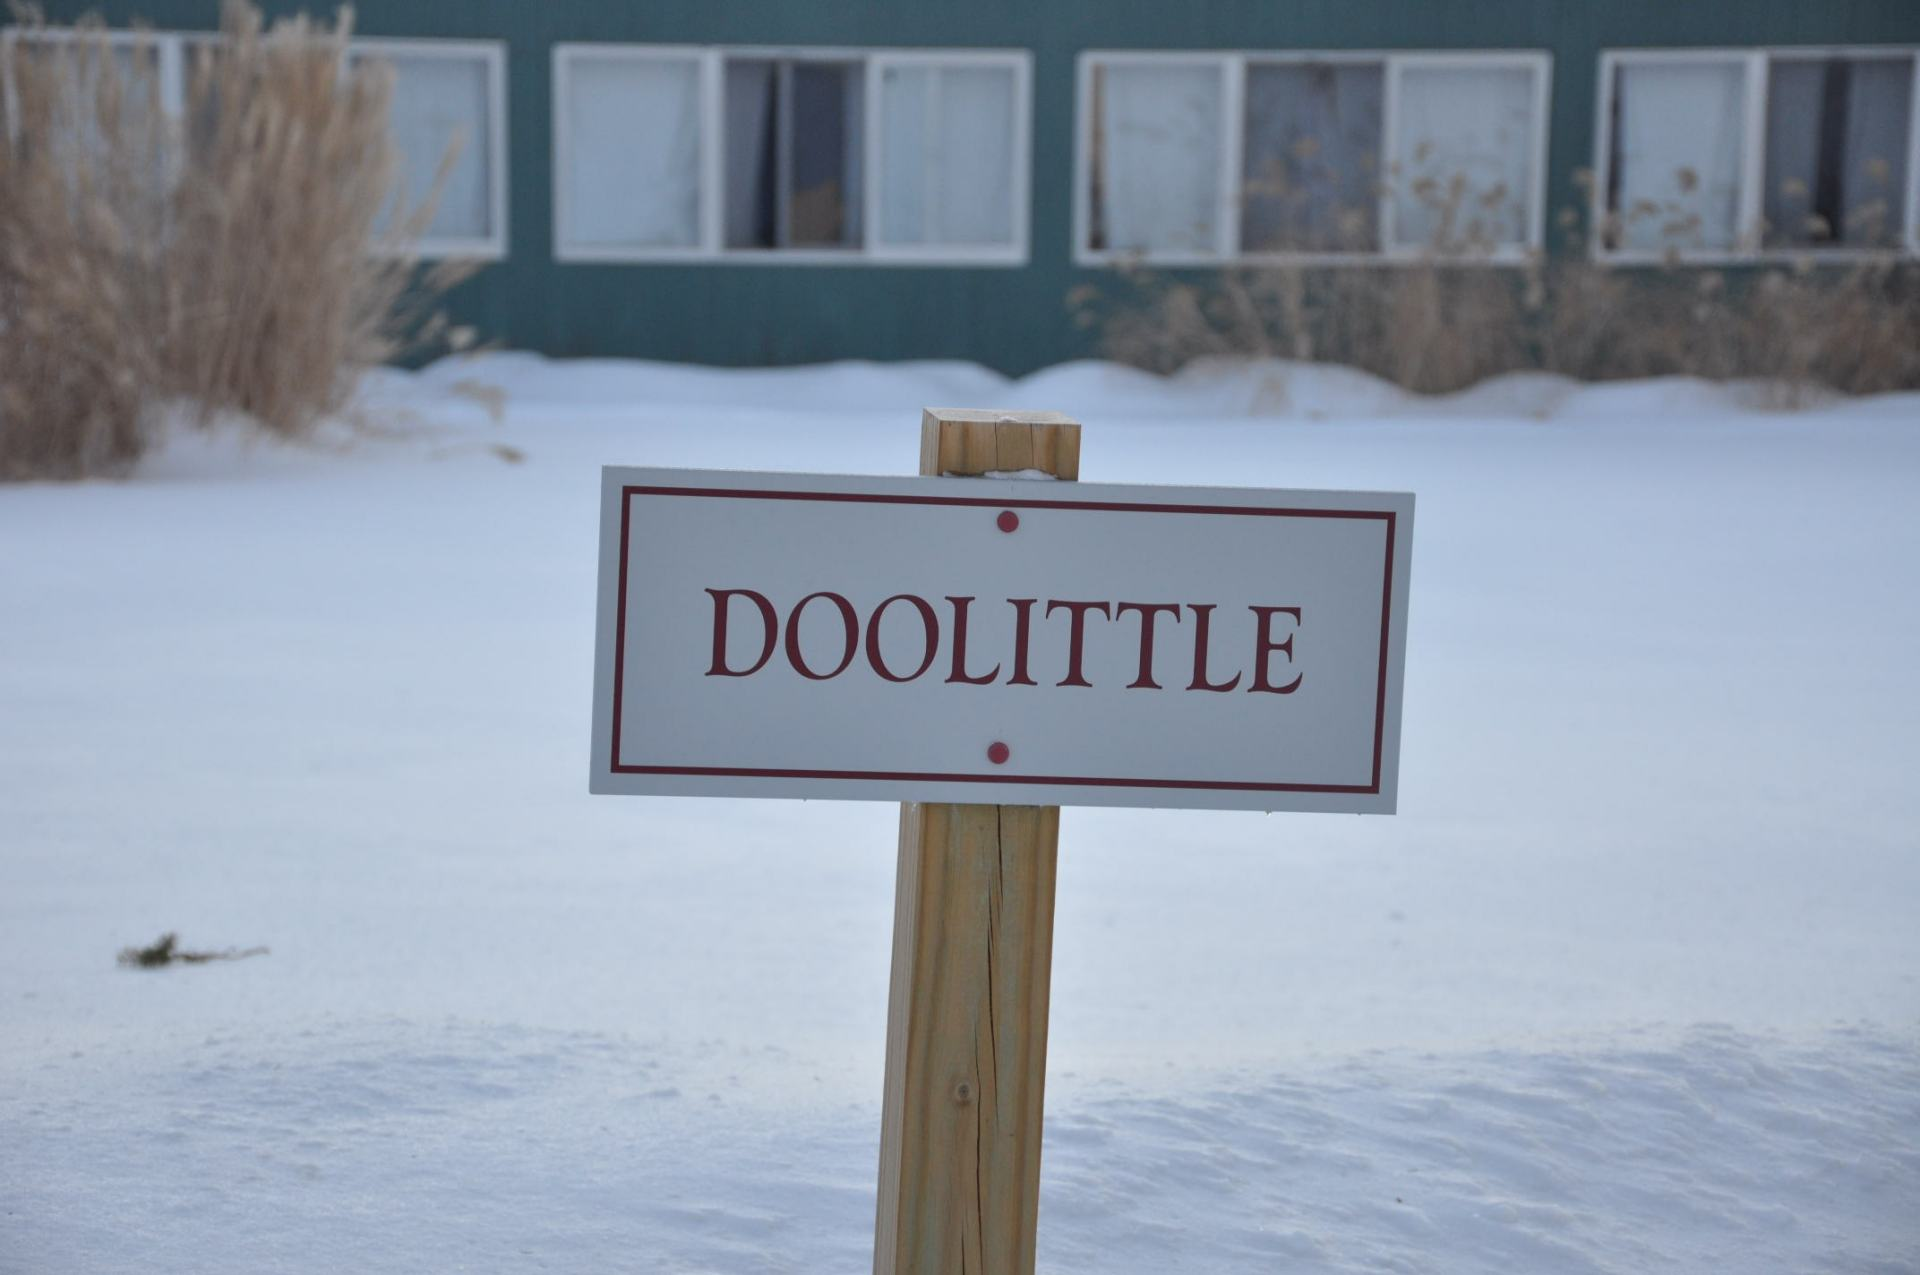 Doolittle Dorm is divided into Upper Doolittle, which houses boys in grades 7-8, and Lower Doolittle, which houses boys in grades 9.